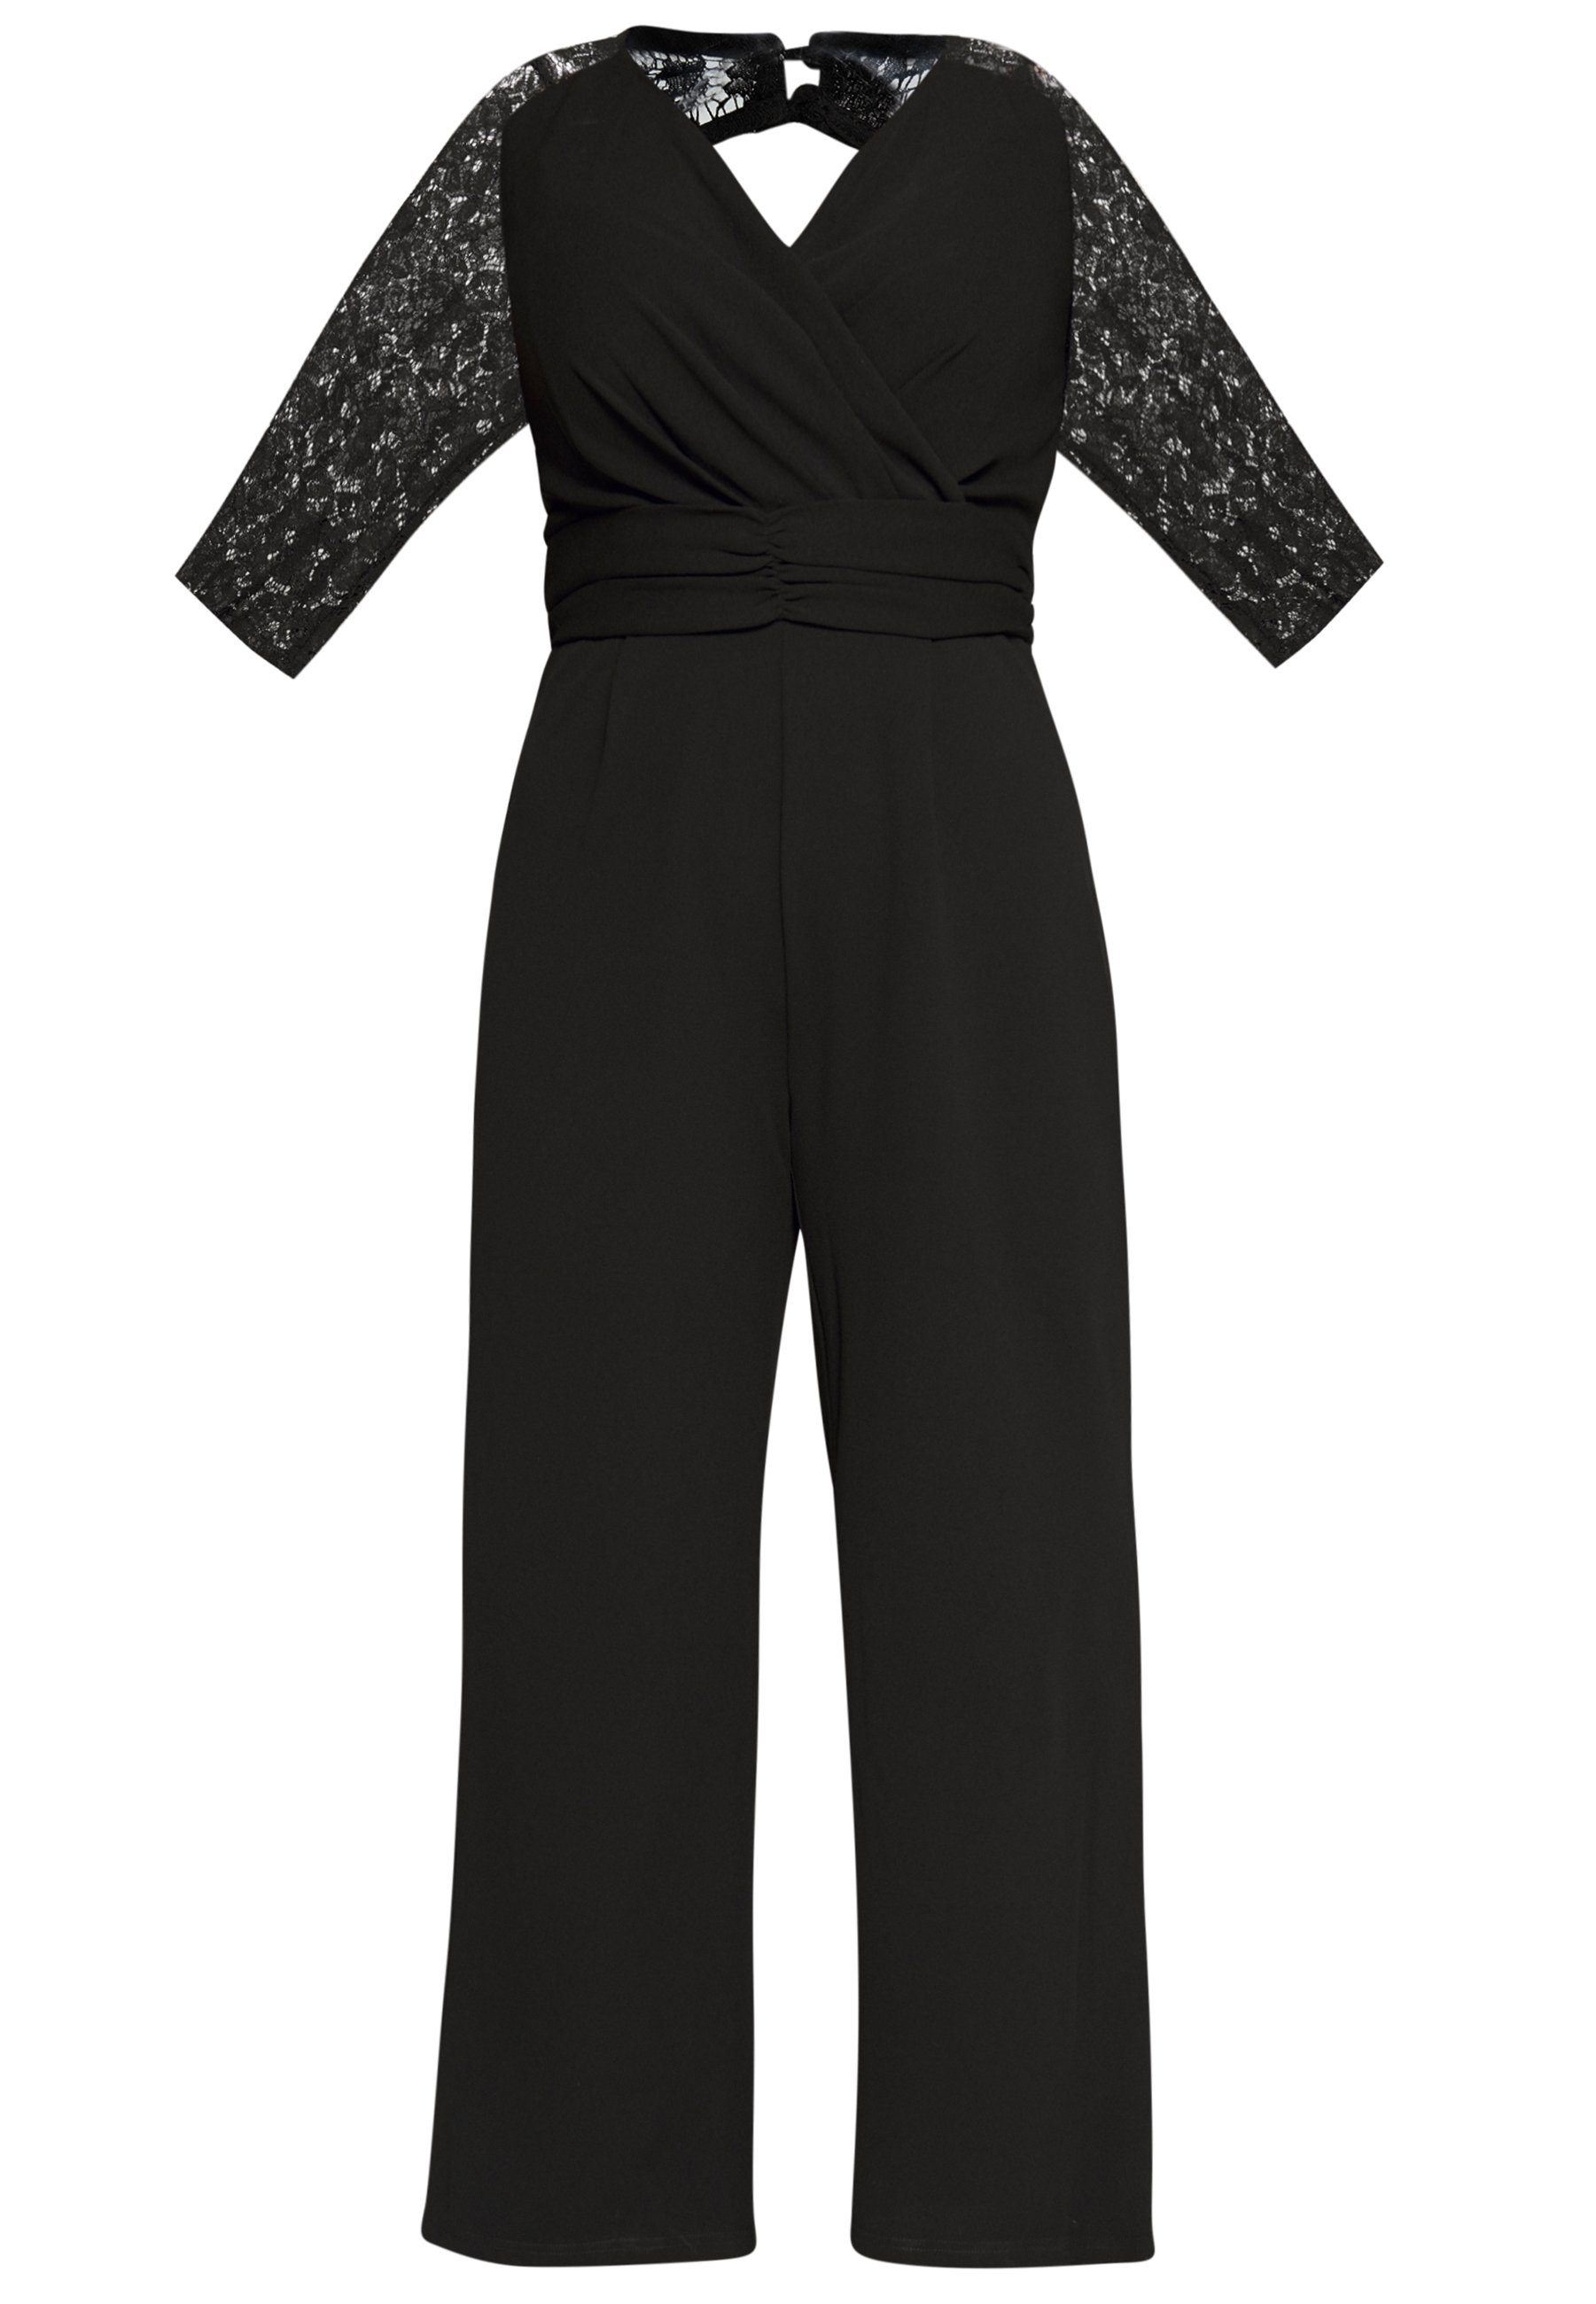 City Chic Overall / Jumpsuit - Black